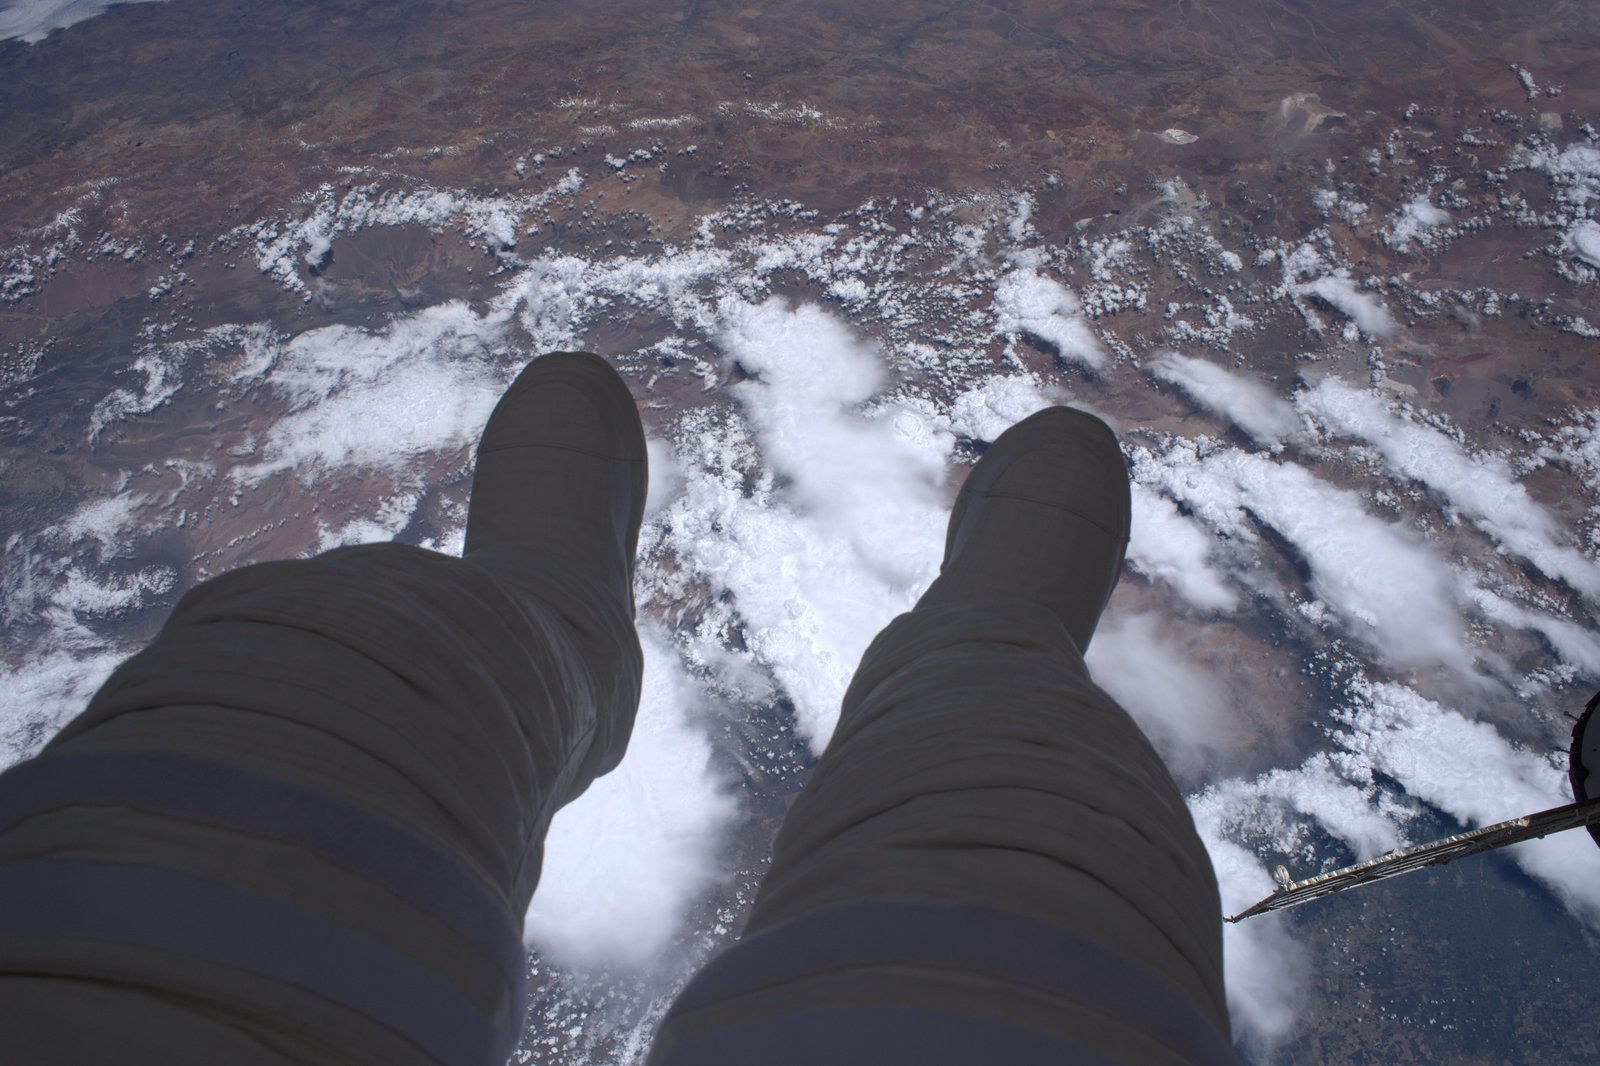 Thomas Pesquet — « Dangling my feet in space »  This is what a spacewalk is : 400 km of void under your feet — Concrètement, une sortie extravéhiculaire, c'est ça : 400 km de vide sous les pieds  — Credits : ESA/NASA